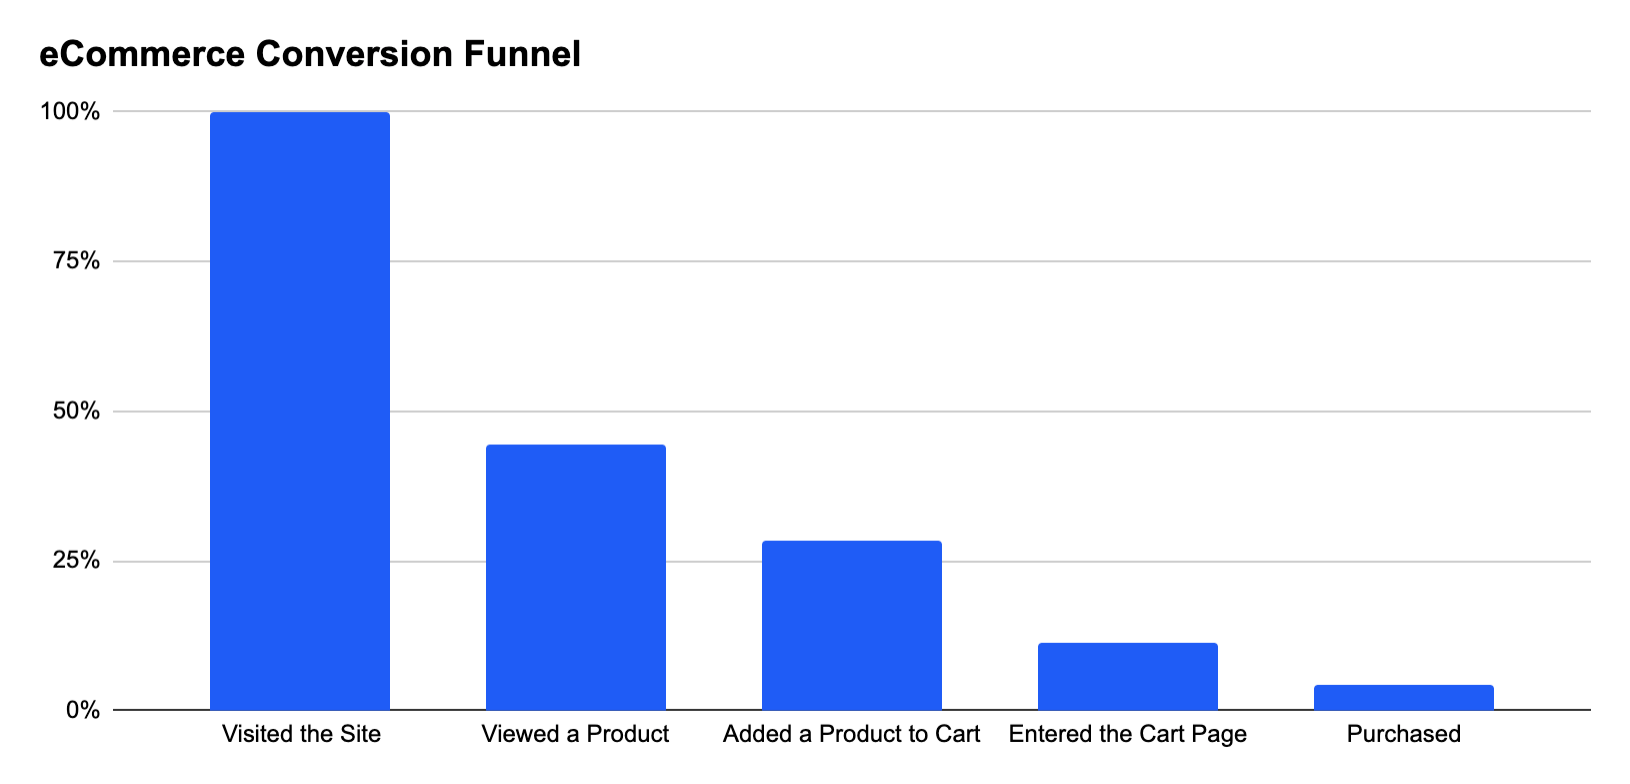 A typical eCommerce conversion funnel